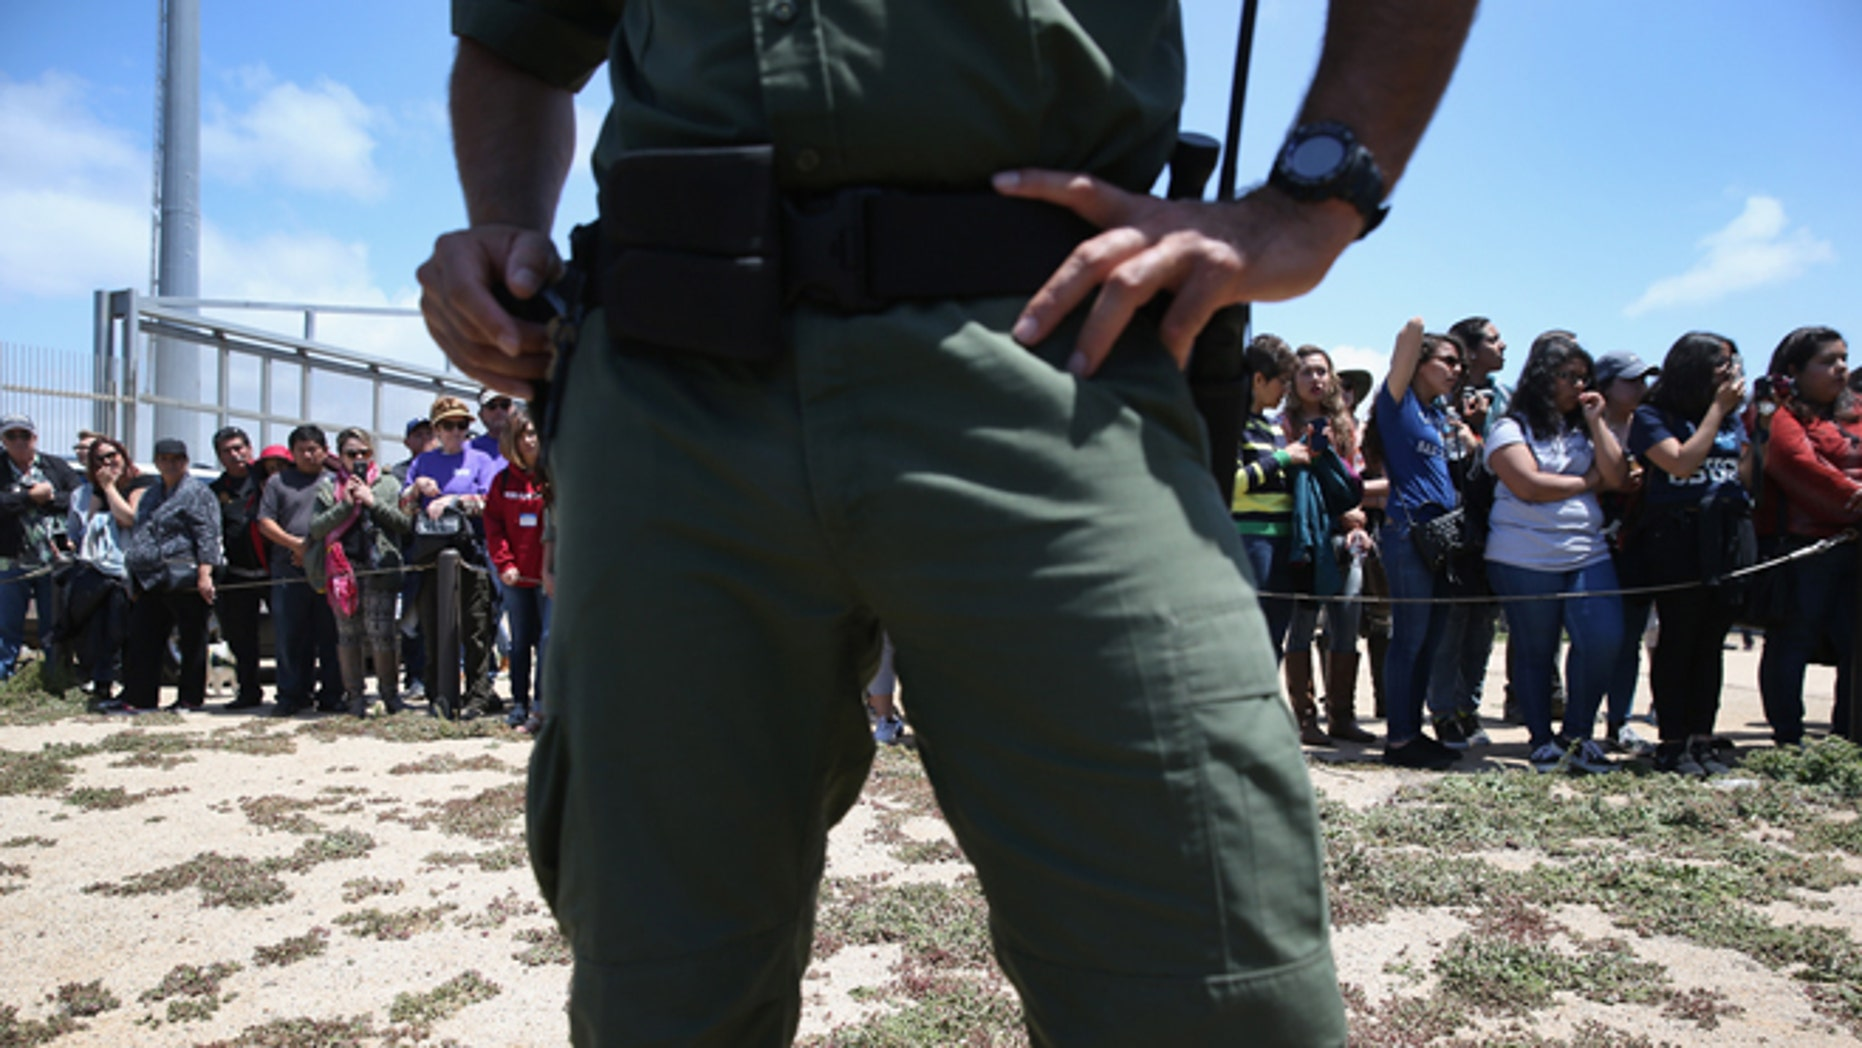 """SAN DIEGO, CA - APRIL 30:  A U.S. Border Patrol agent stands guard as families prepare to meet loved ones at the U.S.-Mexico Border fence during a """"Opening the Door of Hope"""" event on April 30, 2016 in San Diego, California. Five families, with some members living in Mexico and others in the United States, were permitted to meet and embrace for three minutes each at a door in the fence, which the U.S. Border Patrol opened to celebrate Mexican Children's Day. It was only the third time the fence, which separates San Diego from Tijuana, had been opened for families to briefly reunite. The event was planned by the immigrant advocacy group Border Angels.  (Photo by John Moore/Getty Images)"""